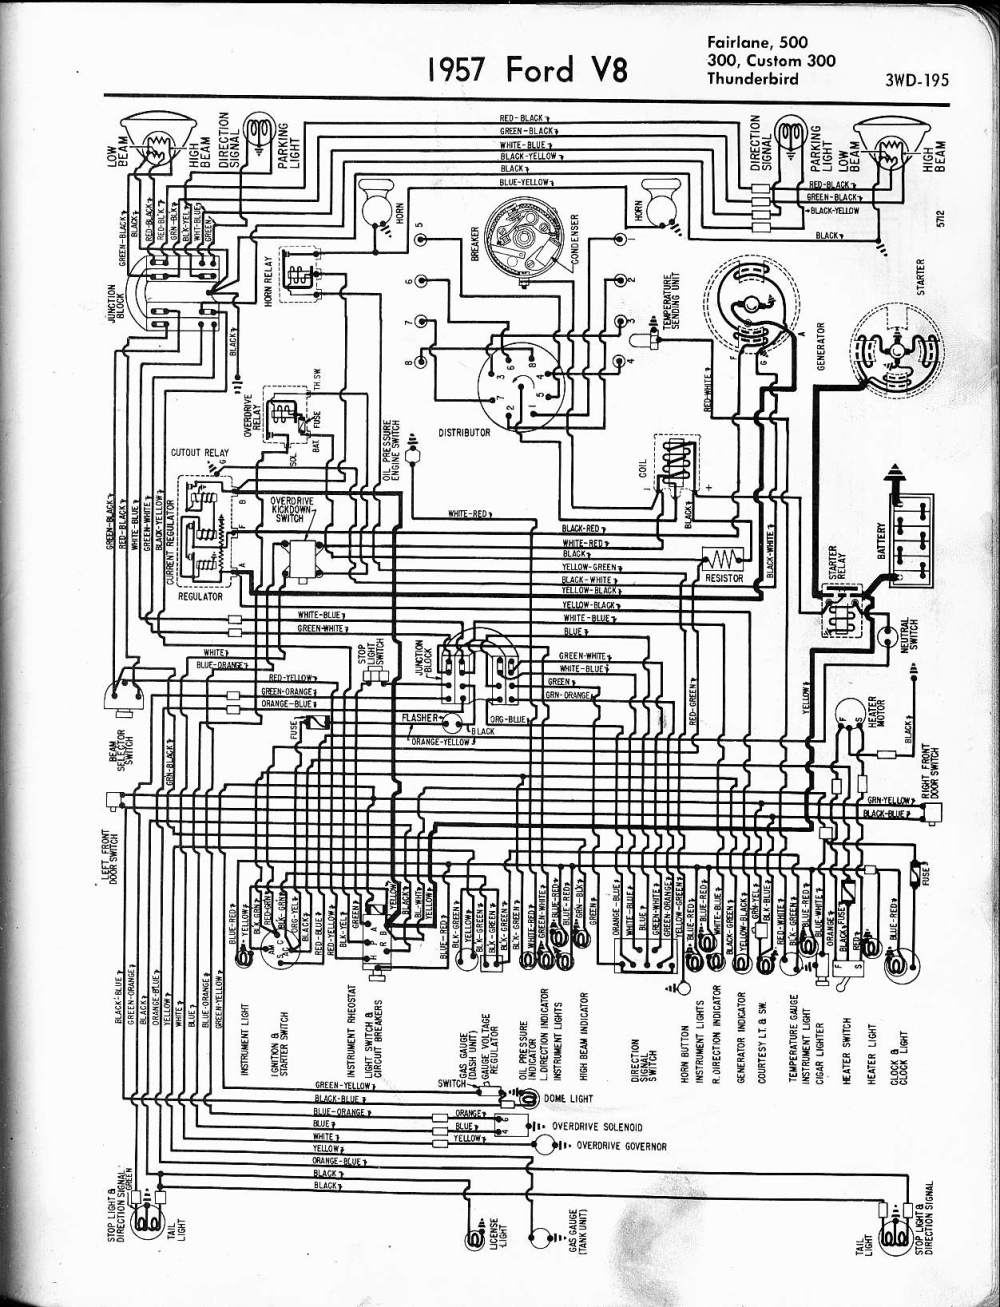 medium resolution of 2004 ford thunderbird wiring diagram data wiring diagram schema 1995 ford aspire wiring diagram 2004 ford thunderbird wiring diagram